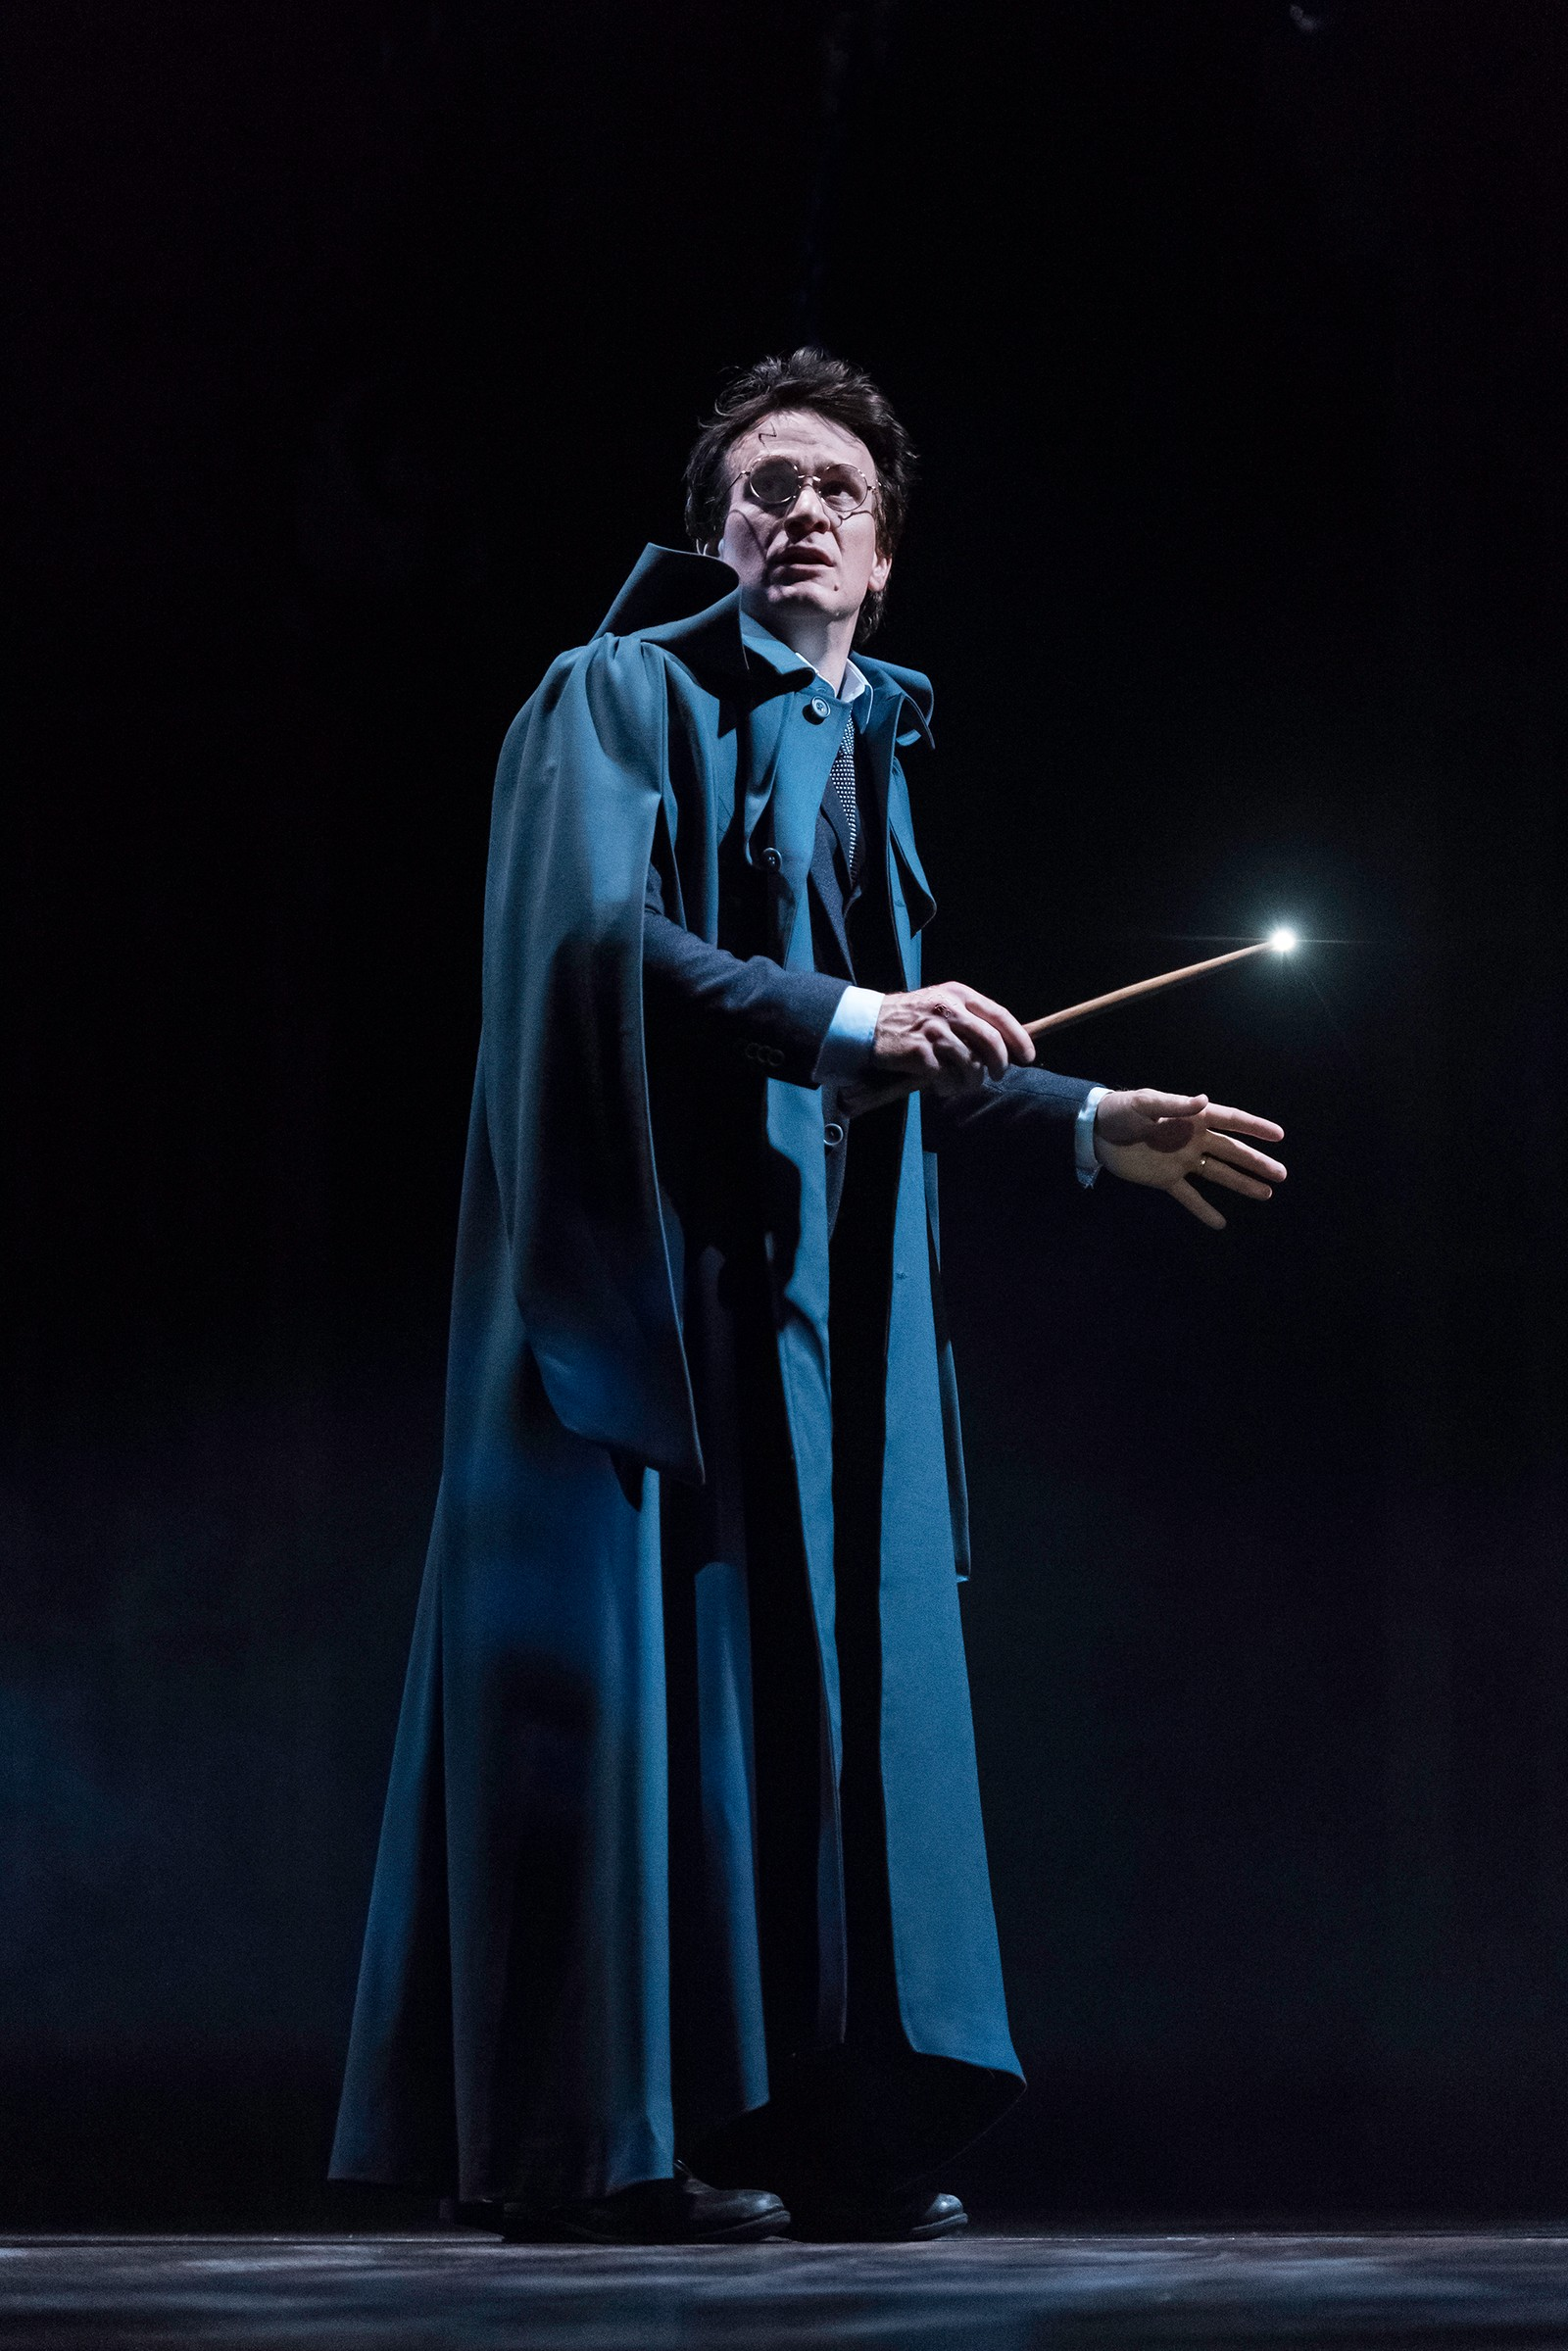 DEN ÅTTENDE FORTELLINGEN: «Harry Potter and the Cursed Child» er den åttende fortellingen om trollmannen Harry Potter, og spilles på teaterscenen i Londons West End.